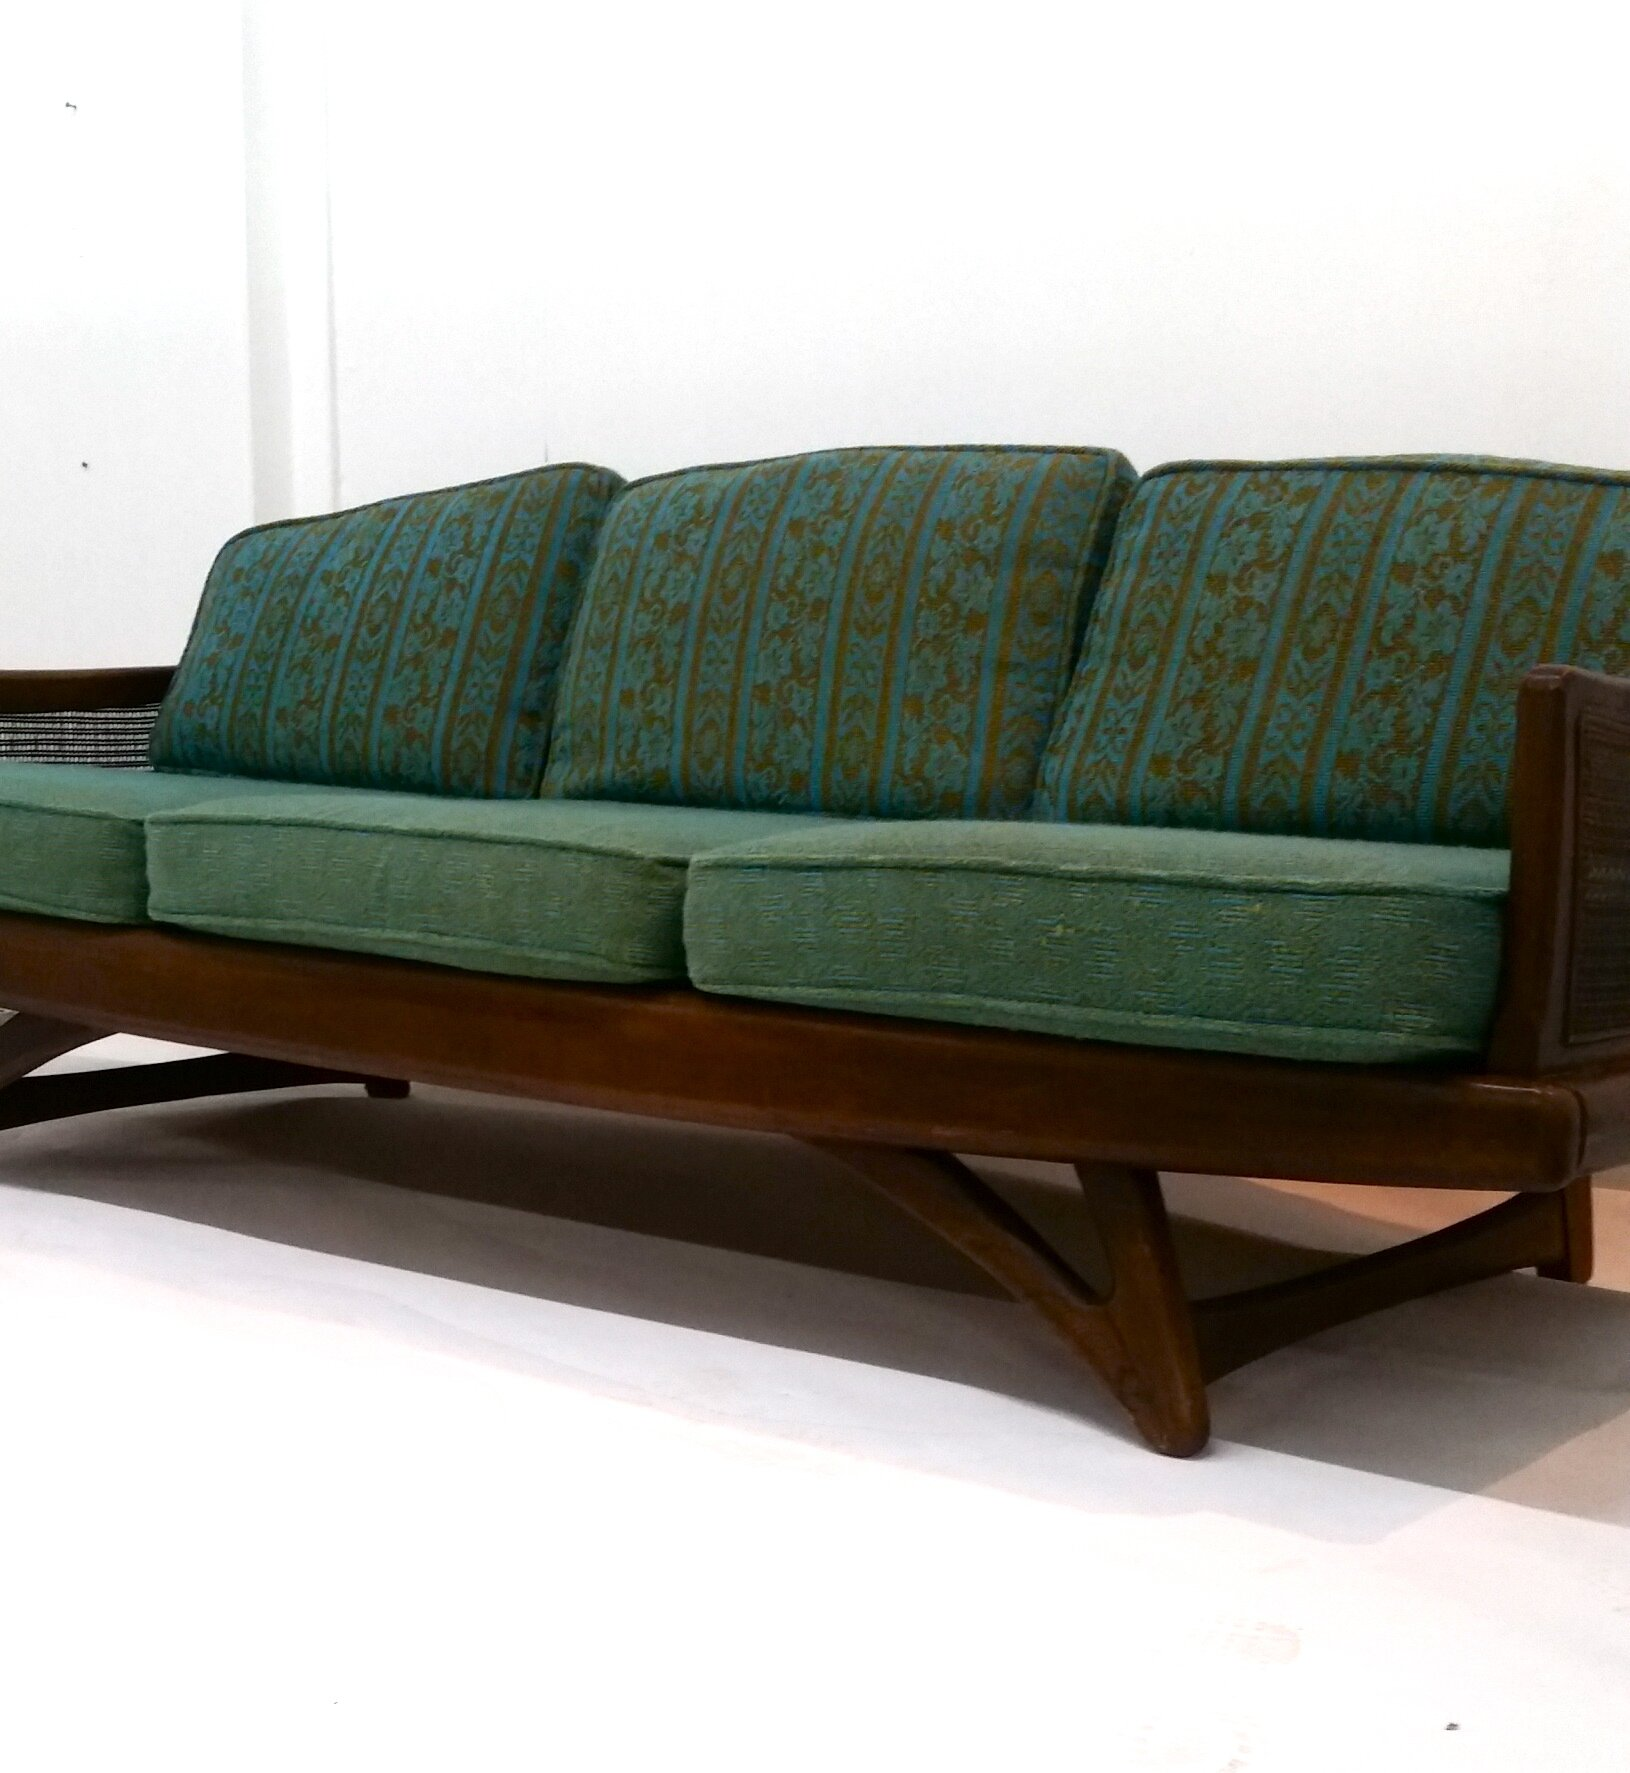 Discount modern sofas discount modern sofas designer for Affordable contemporary furniture